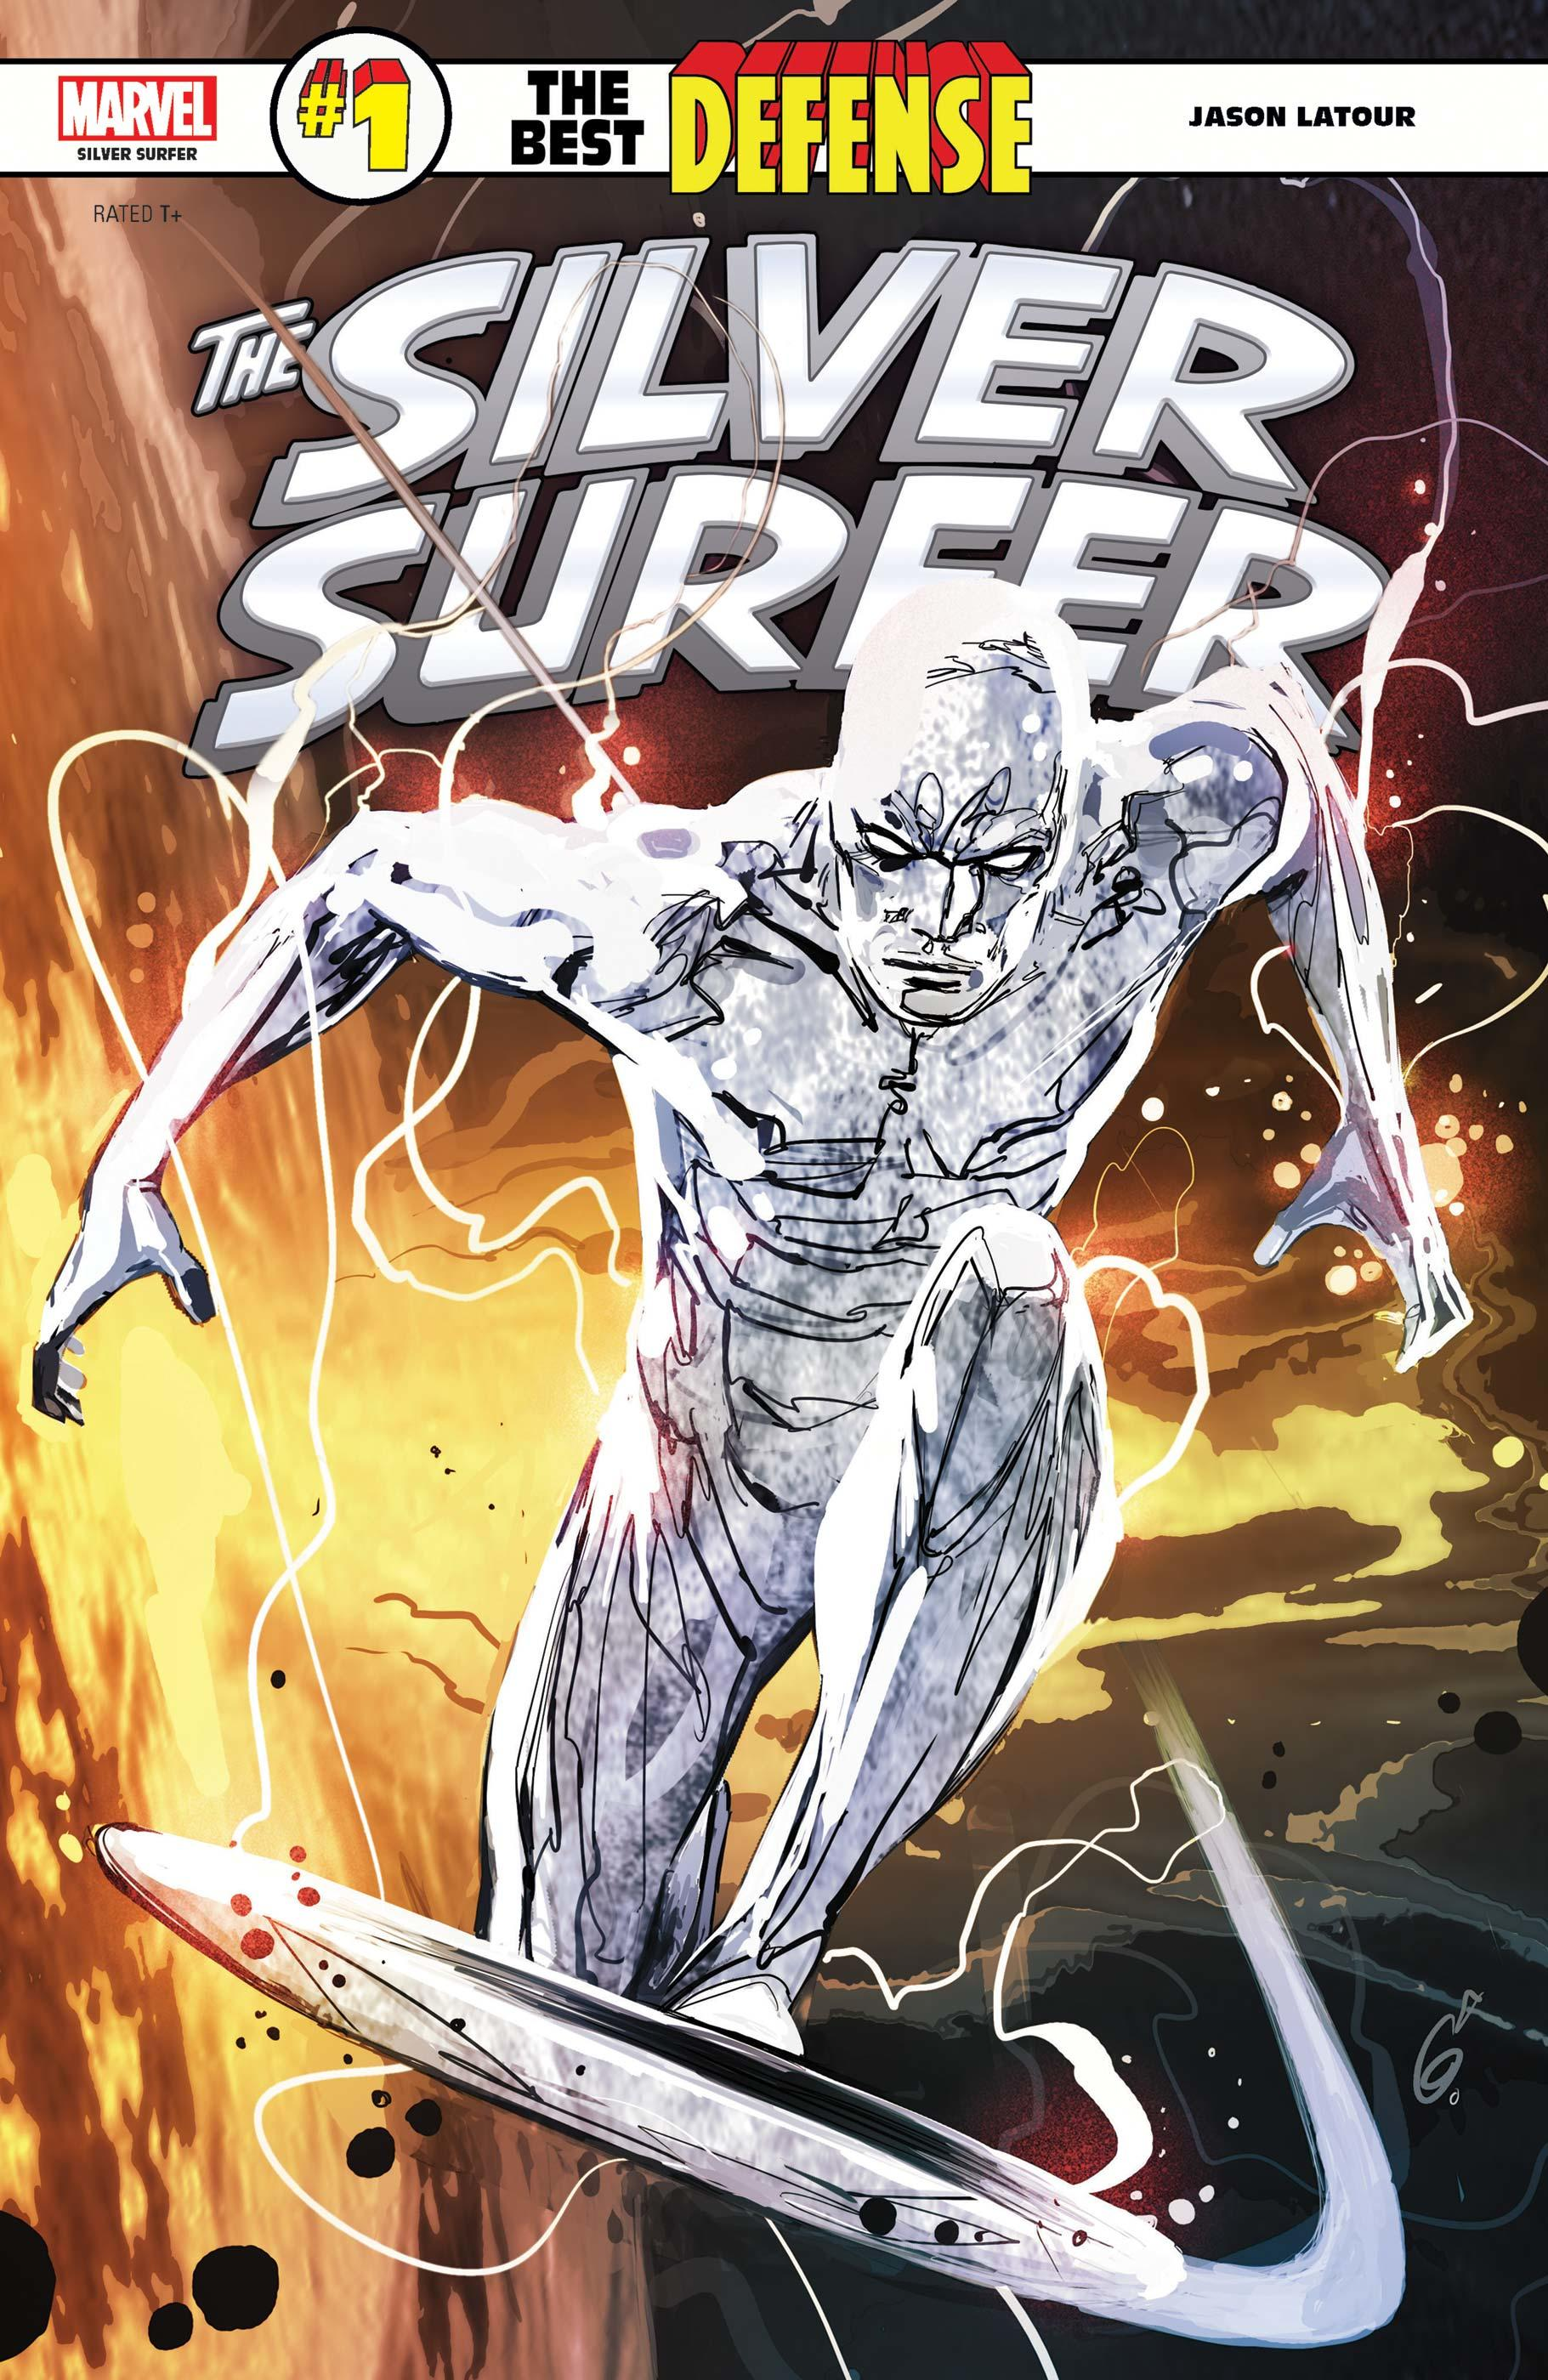 Silver Surfer: The Best Defense (2018) #1 cover by Ron Garney